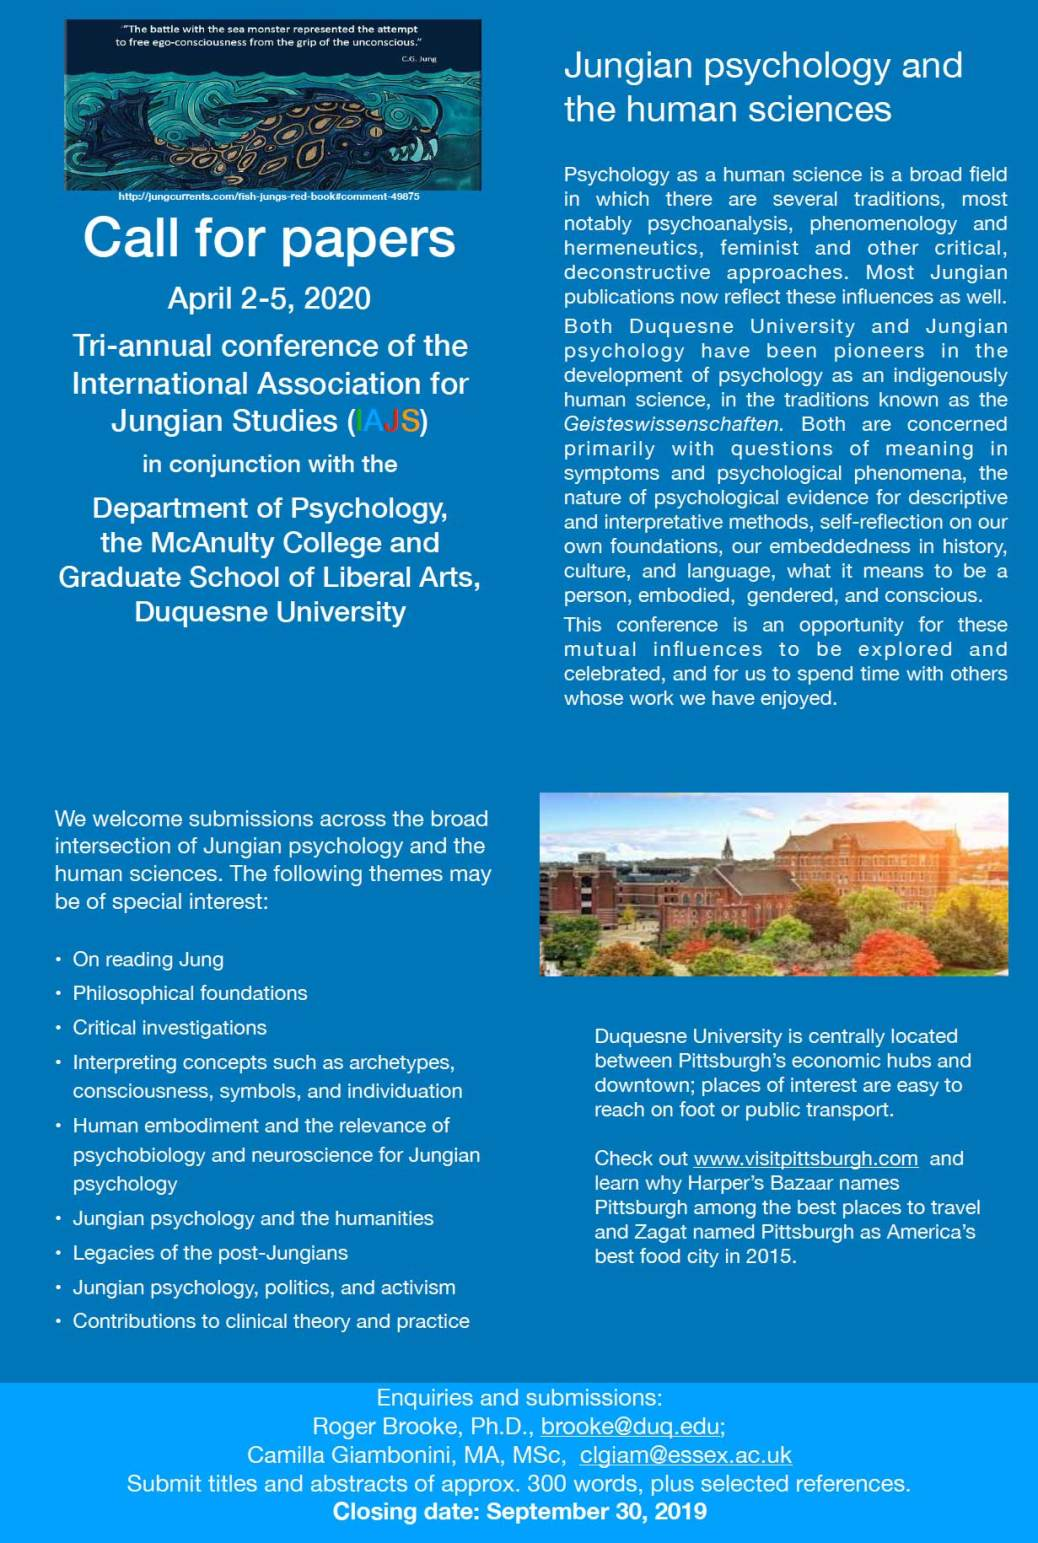 Call for Papers: Jungian Psychology & the Human Sciences - IAJS